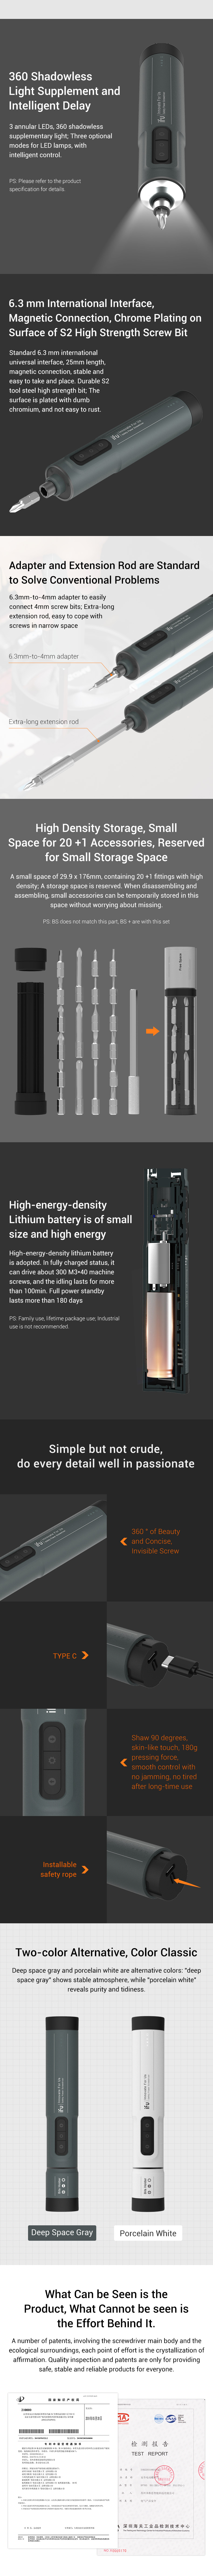 iFu BS1/BS1+ 6.3mm Lithium Electric/Manual Screwdriver 3 Speeds LED Lights Rechargeable Magnetic Integrated Screw Driver with 9/29 Screw Bits